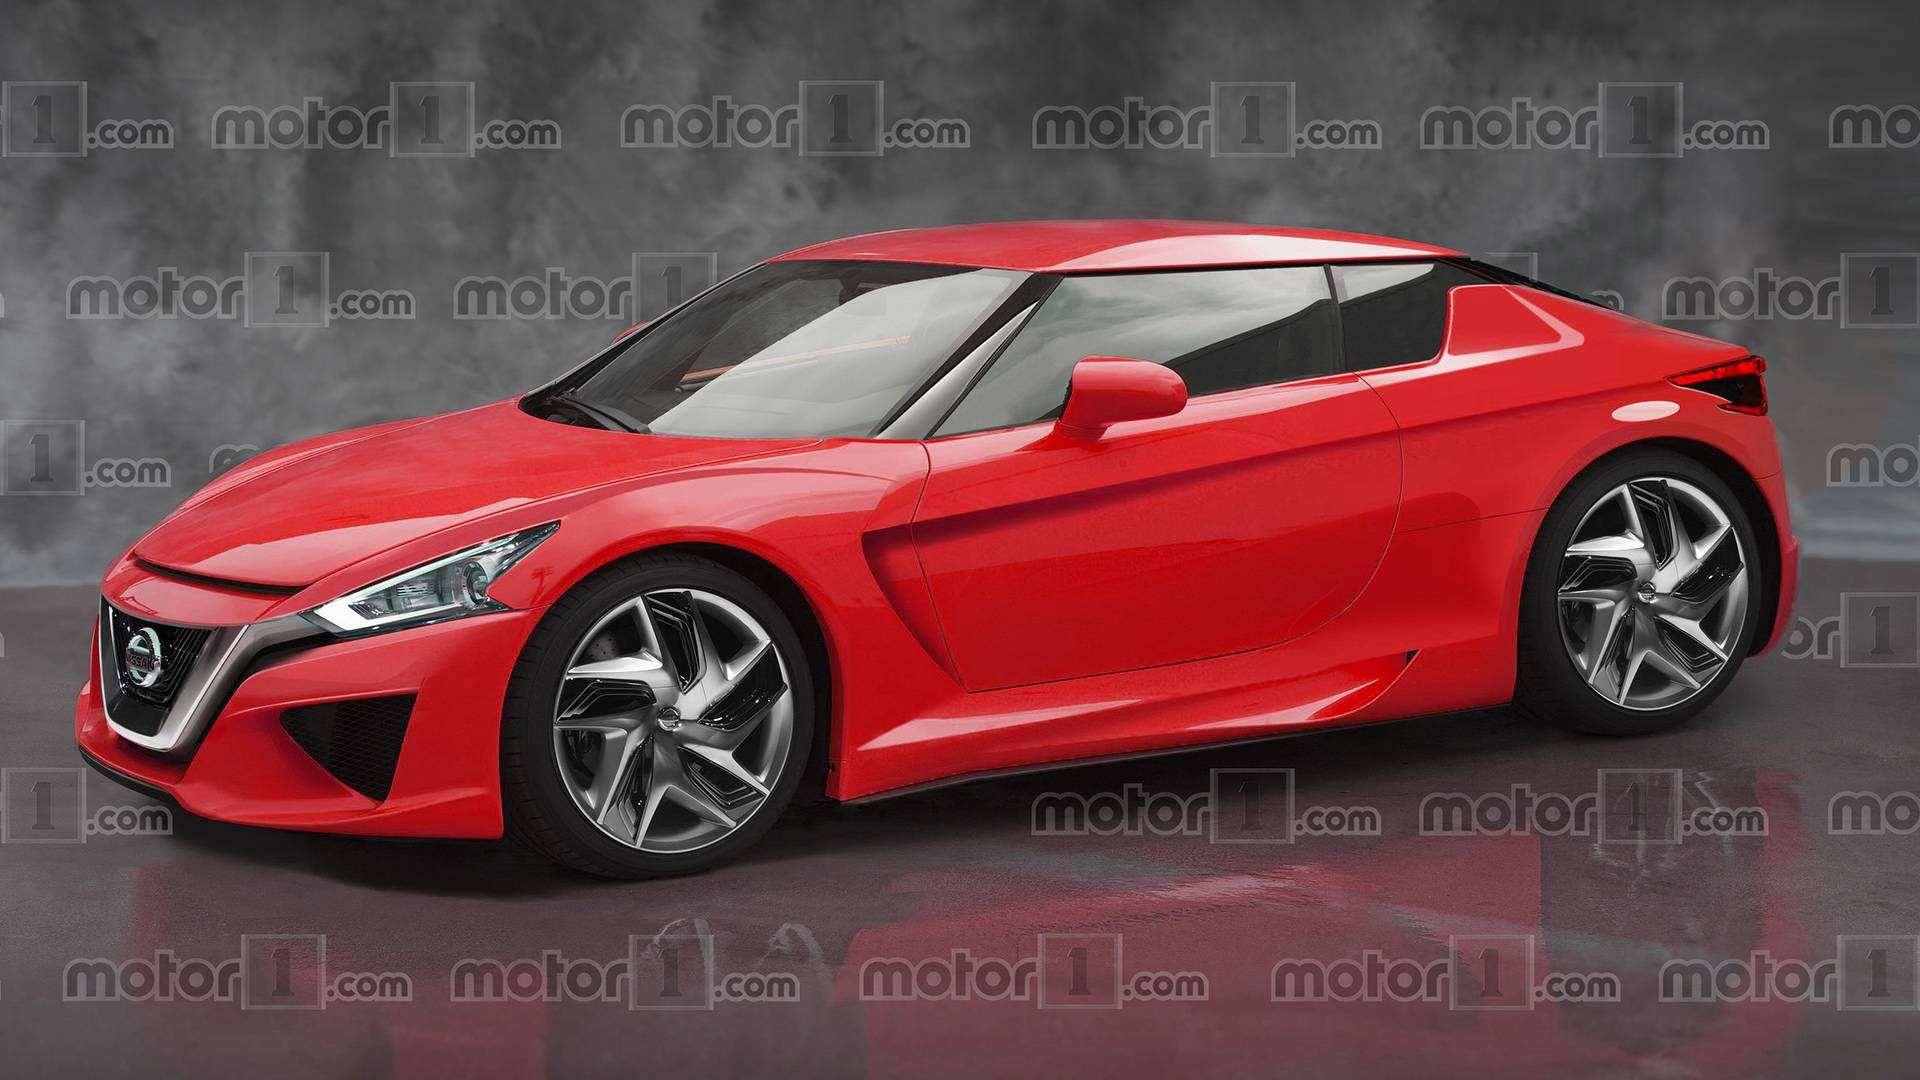 20 Concept of 2020 Nissan Z Price and Review by 2020 Nissan Z